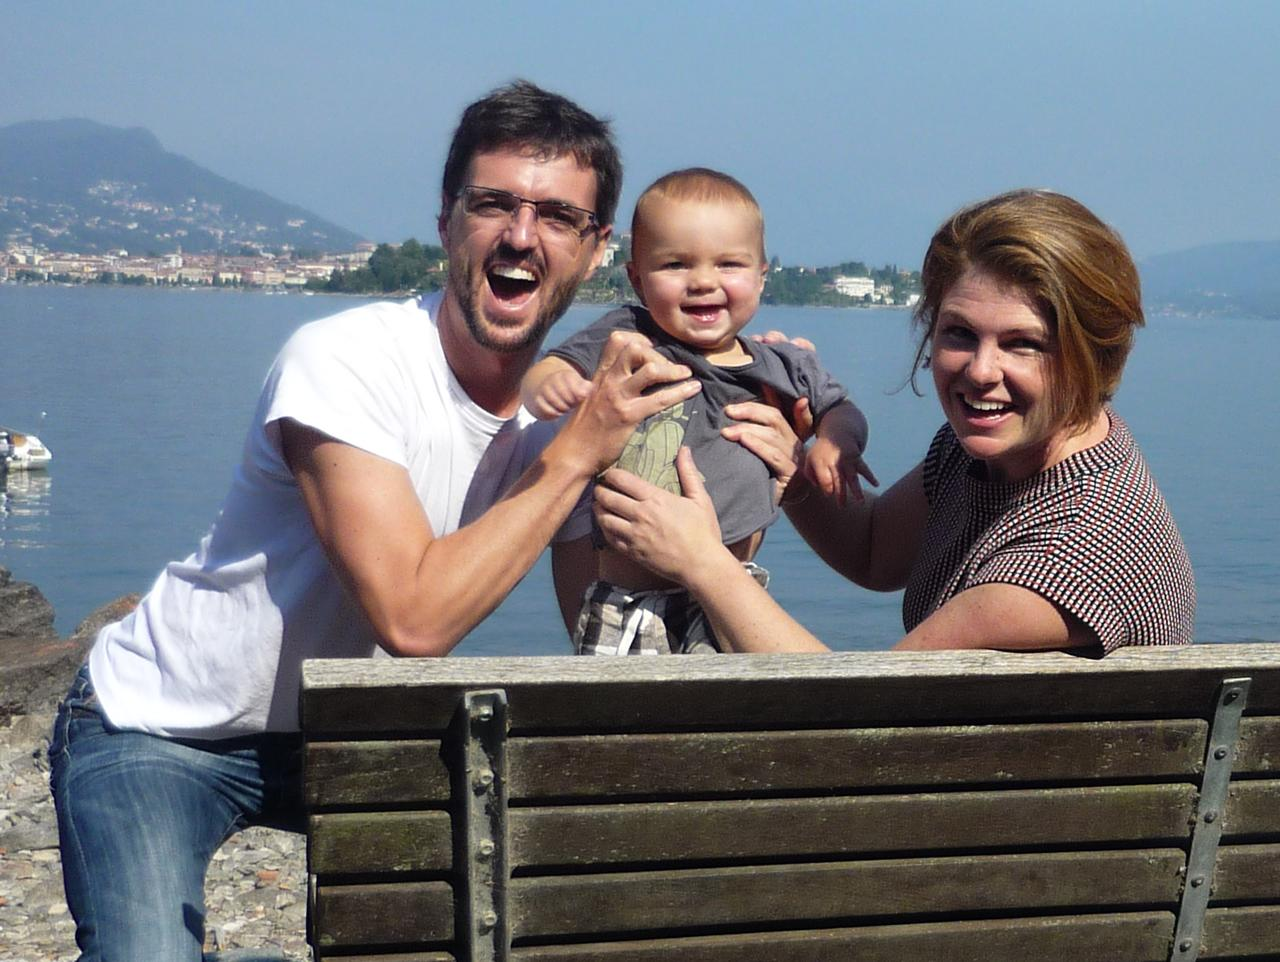 Supplied News News Corp Aust reporter John Rolfe, wife Kate and their son Carter (11 months) at Stresa, Italy. Fo